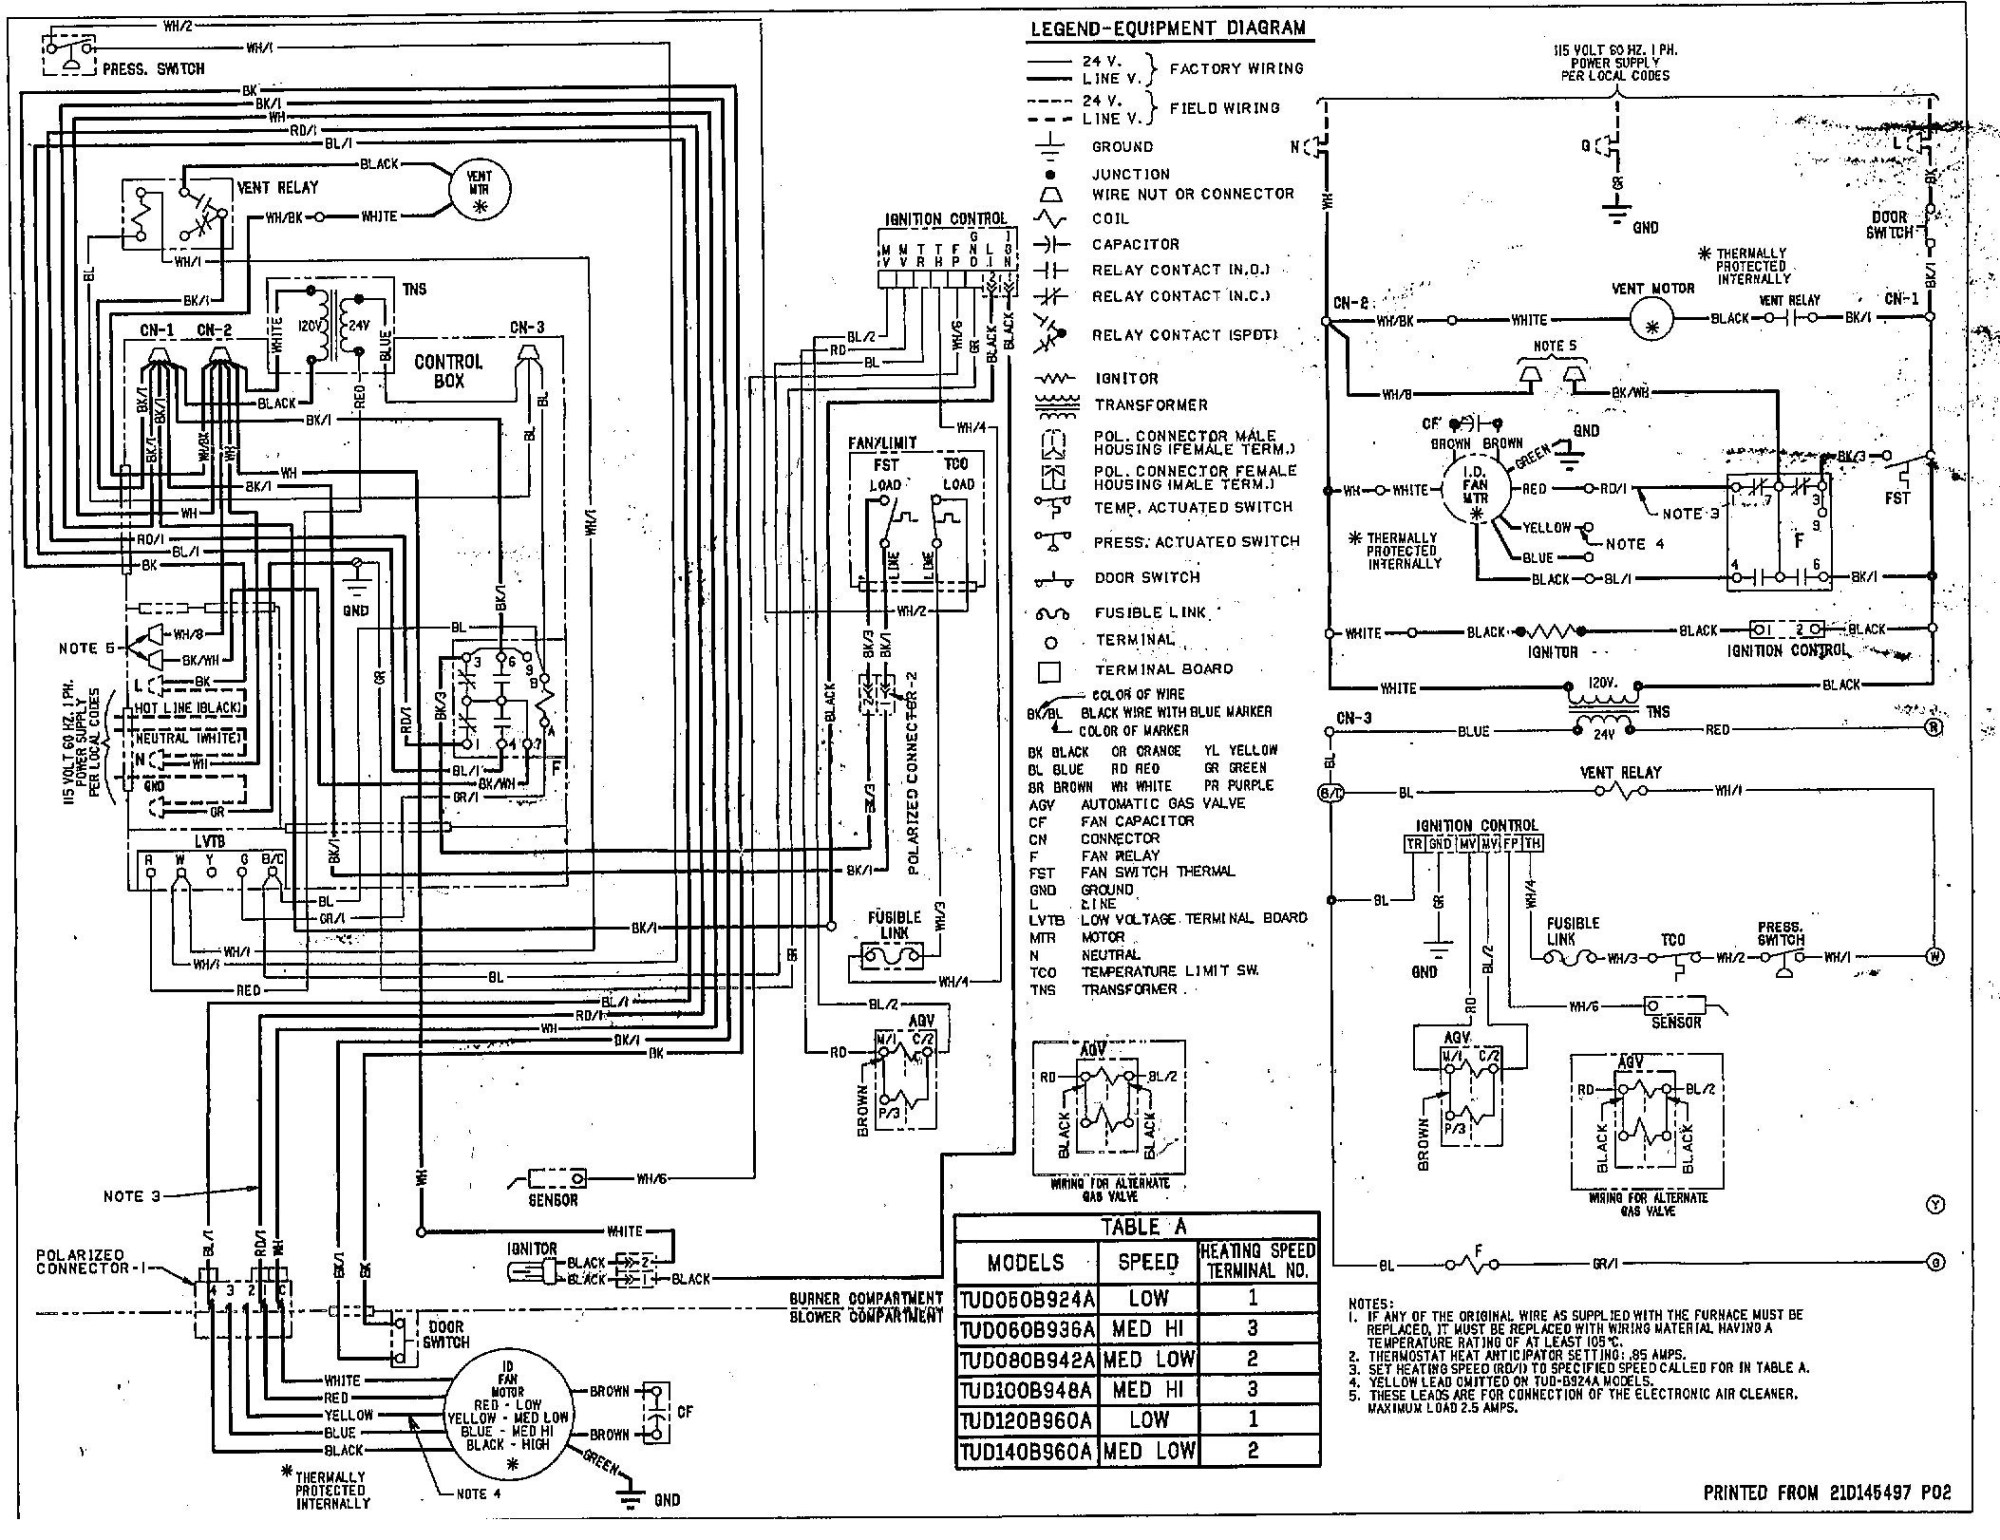 hight resolution of typical furnace wiring diagram wiring diagram insidetypical control wiring on furnace reznor wiring diagram datasource typical